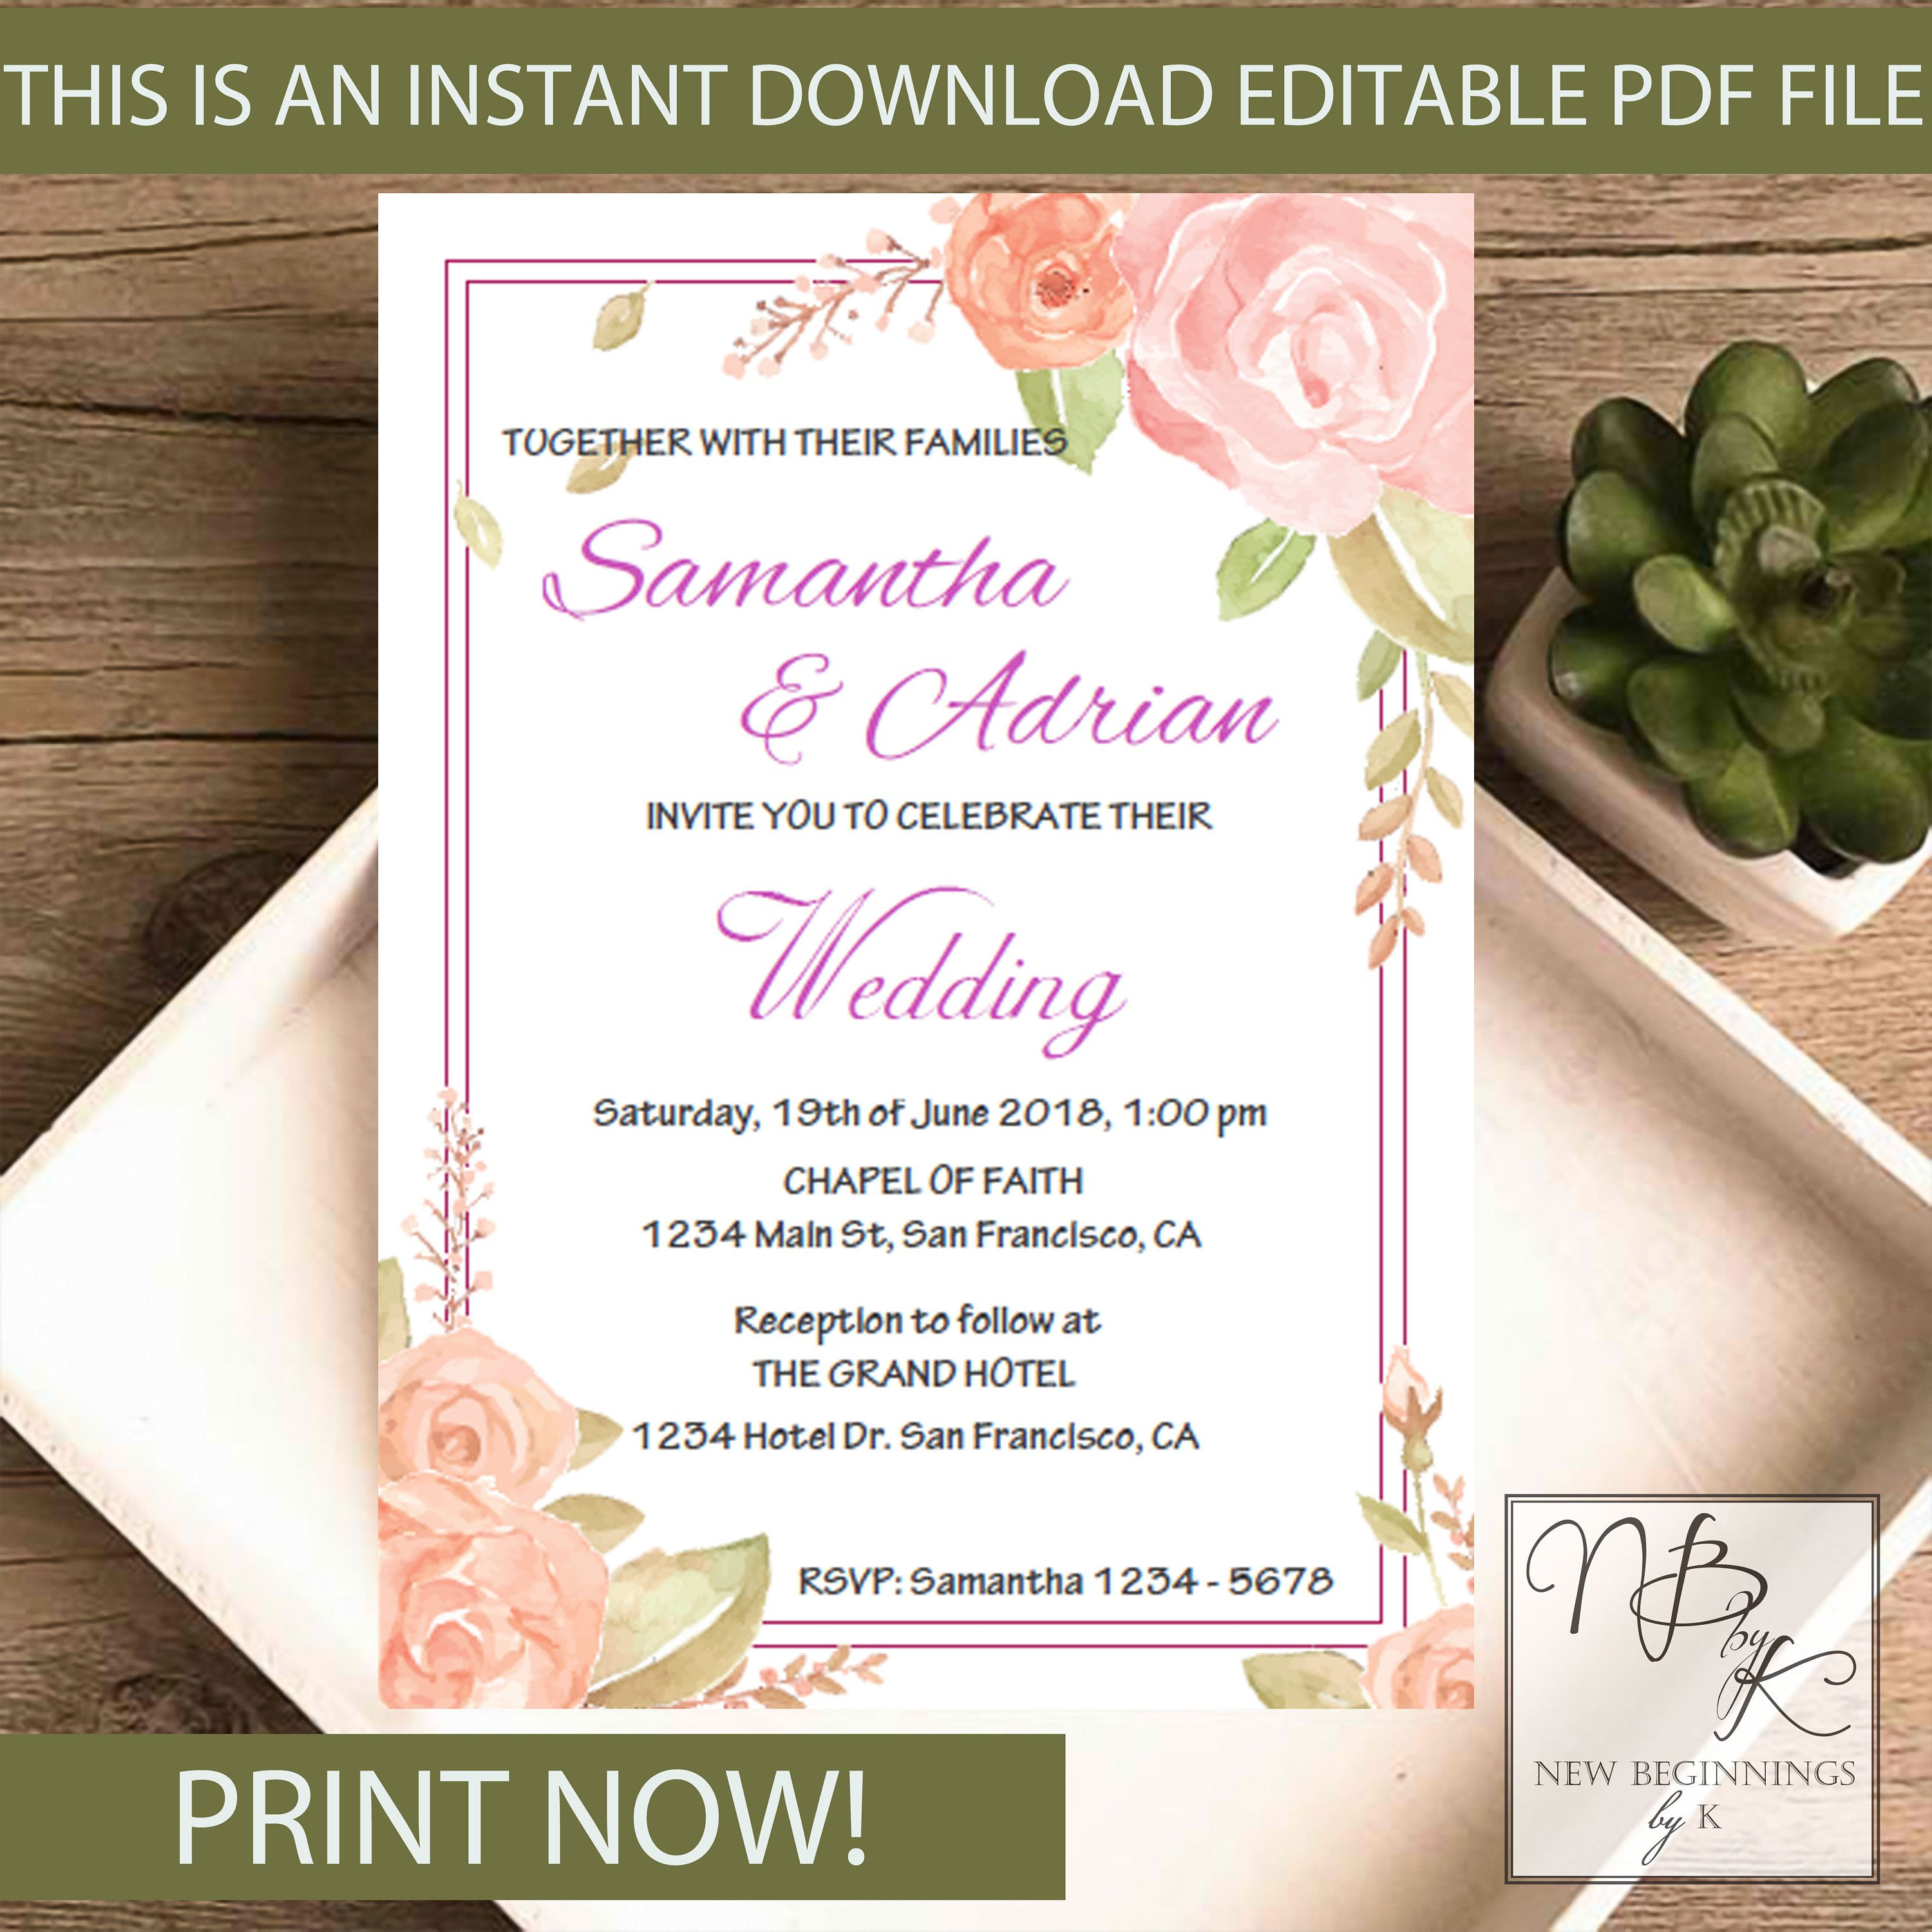 EDITABLE Rustic Floral Wedding invitation with lace and pearls ...